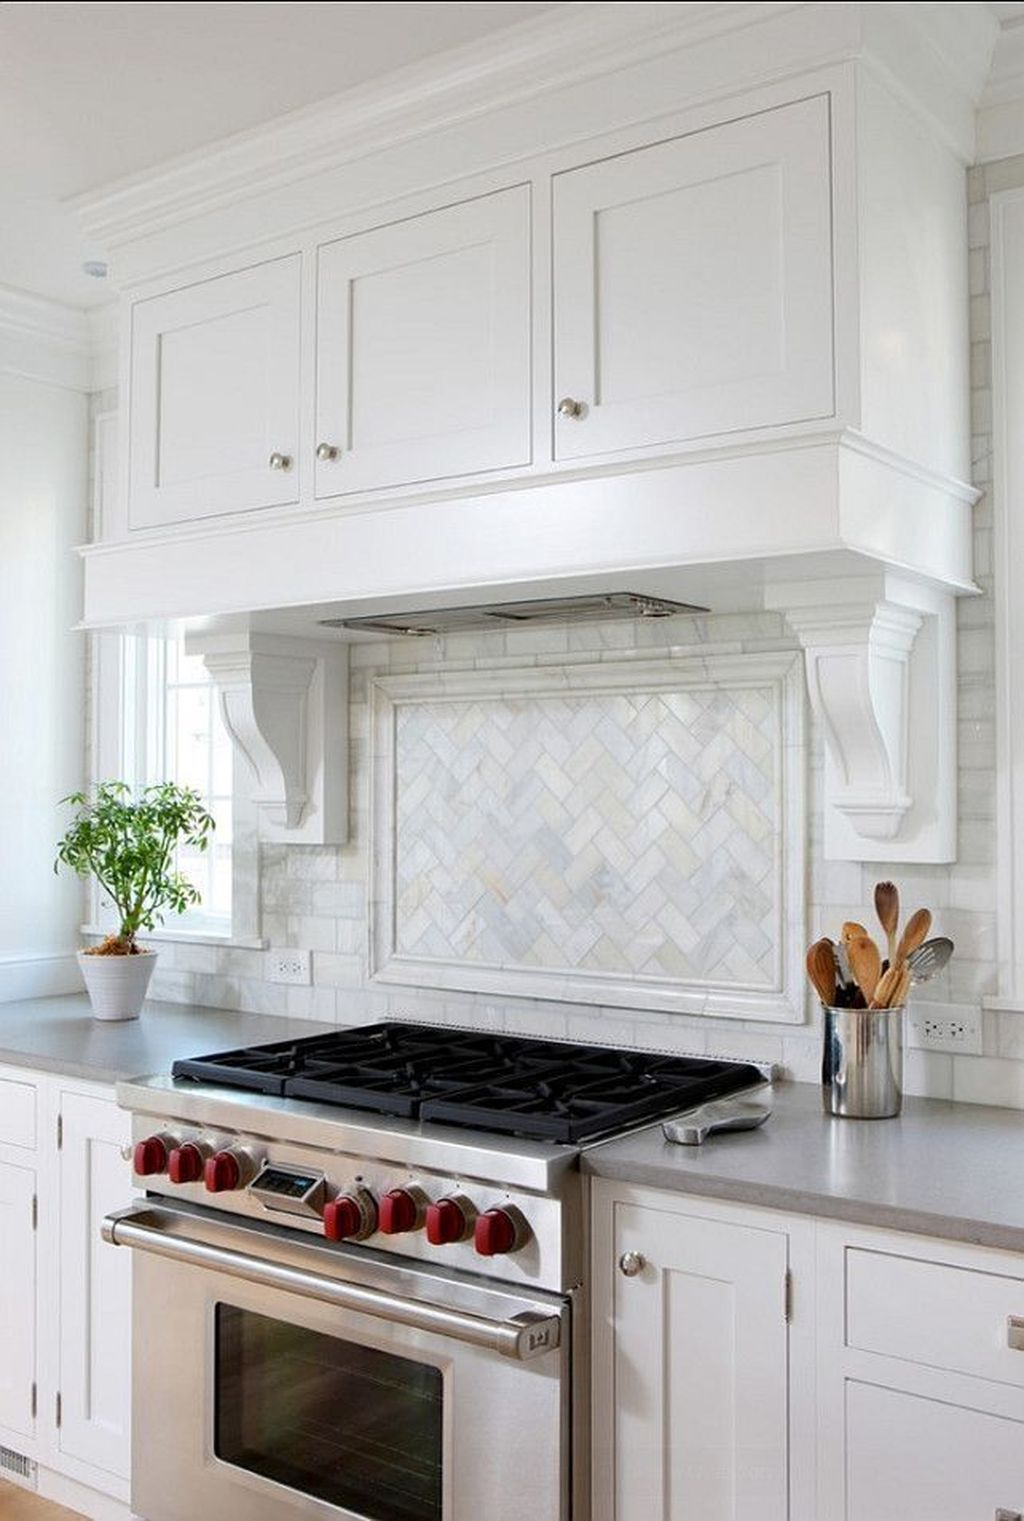 Awesome Creative Kitchen Backsplash Ideas 20